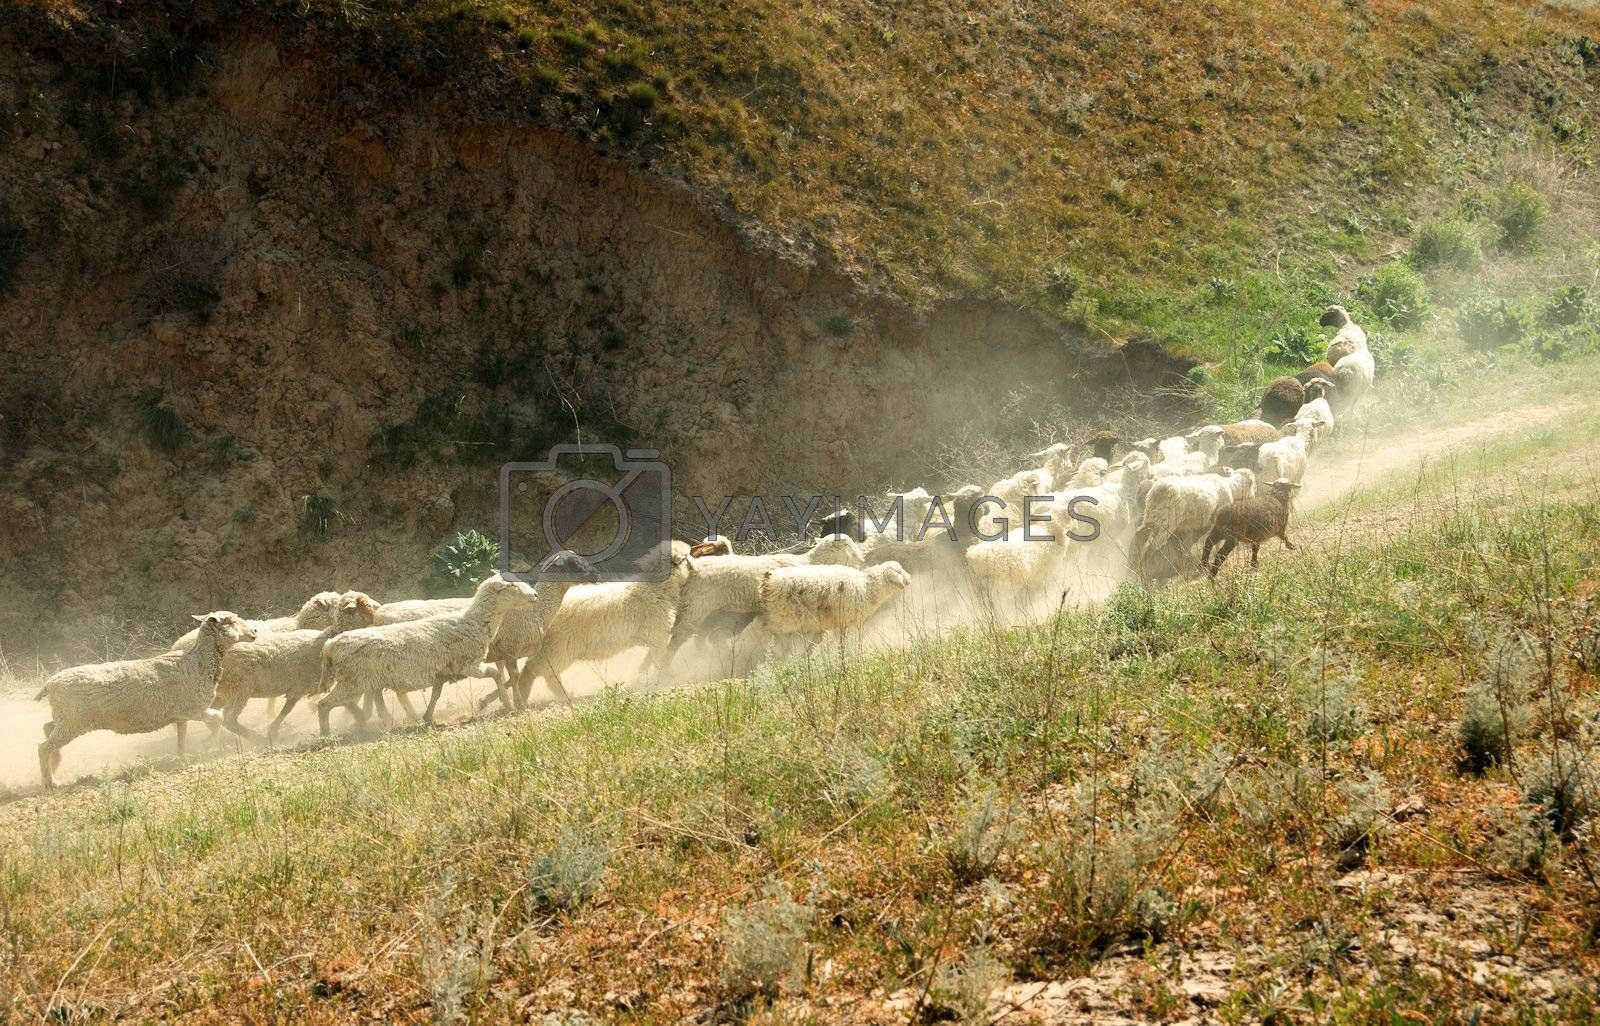 Numerous sheep walking in mountain area. Middle Asia. Natural light and colors